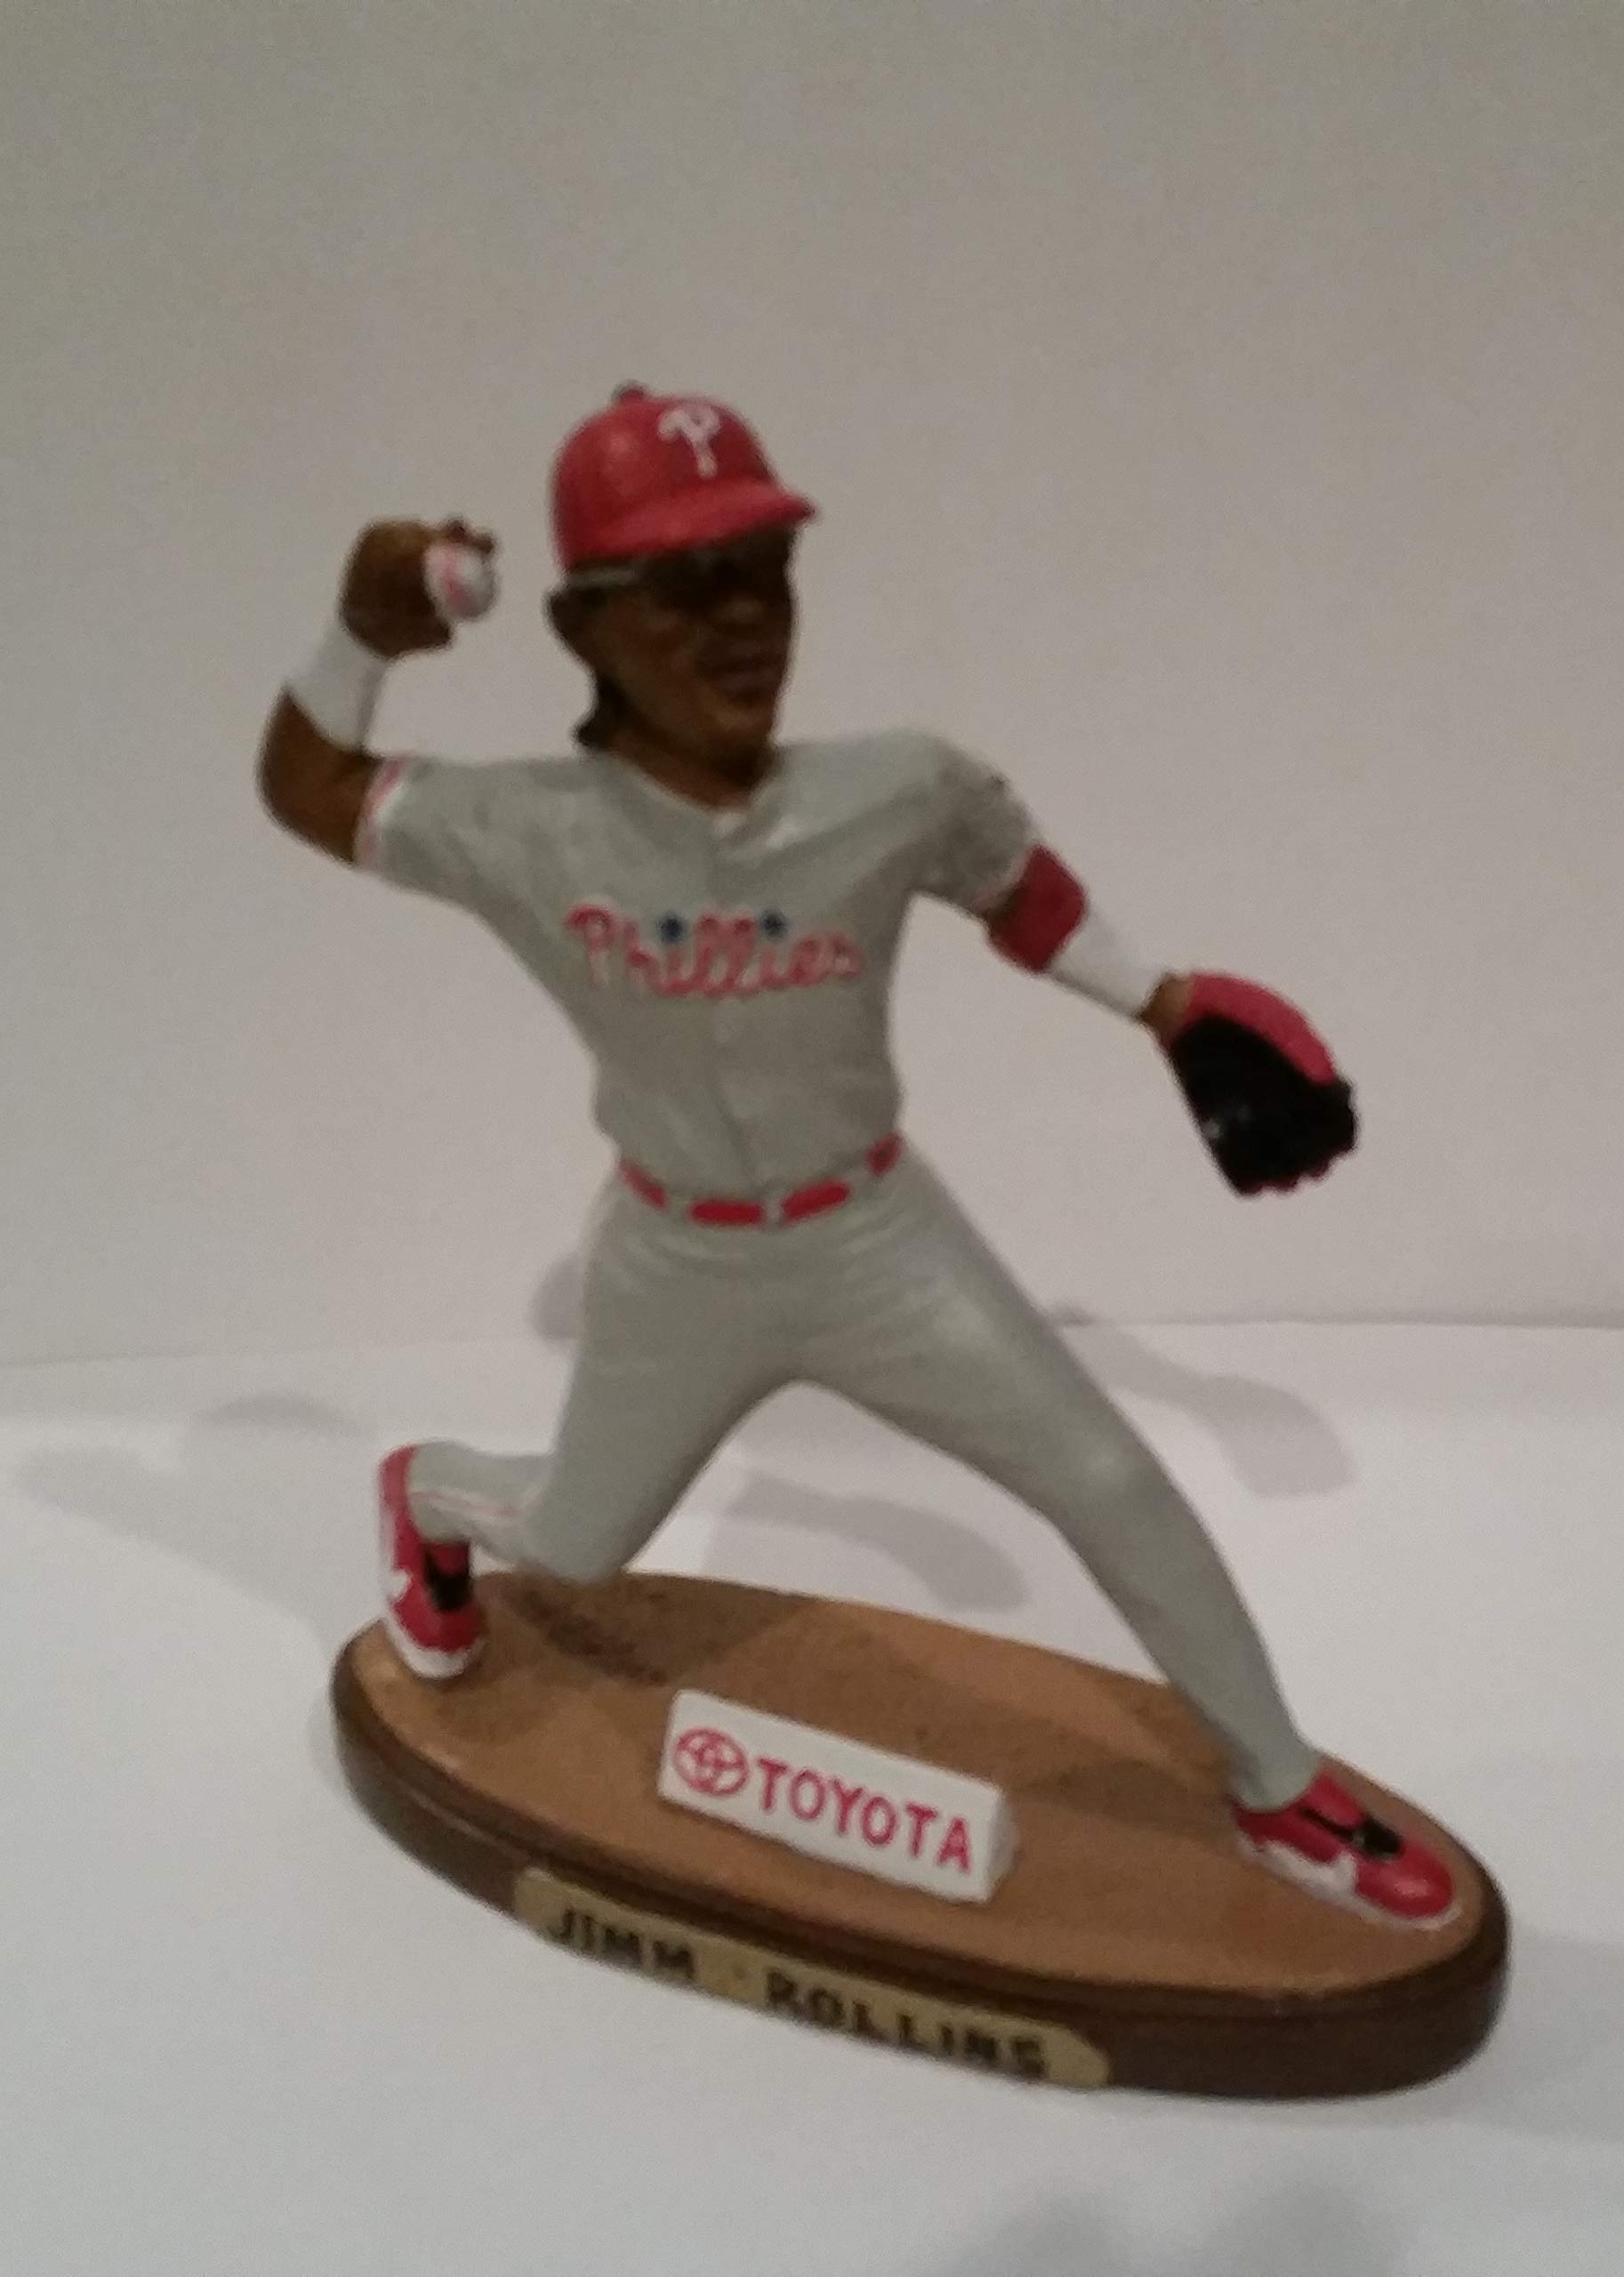 JIMMY ROLLINS COLLECTIBLE FIGURINE 2005 LIMITED EDITION PHILADELPHIA PHILLIES SGA